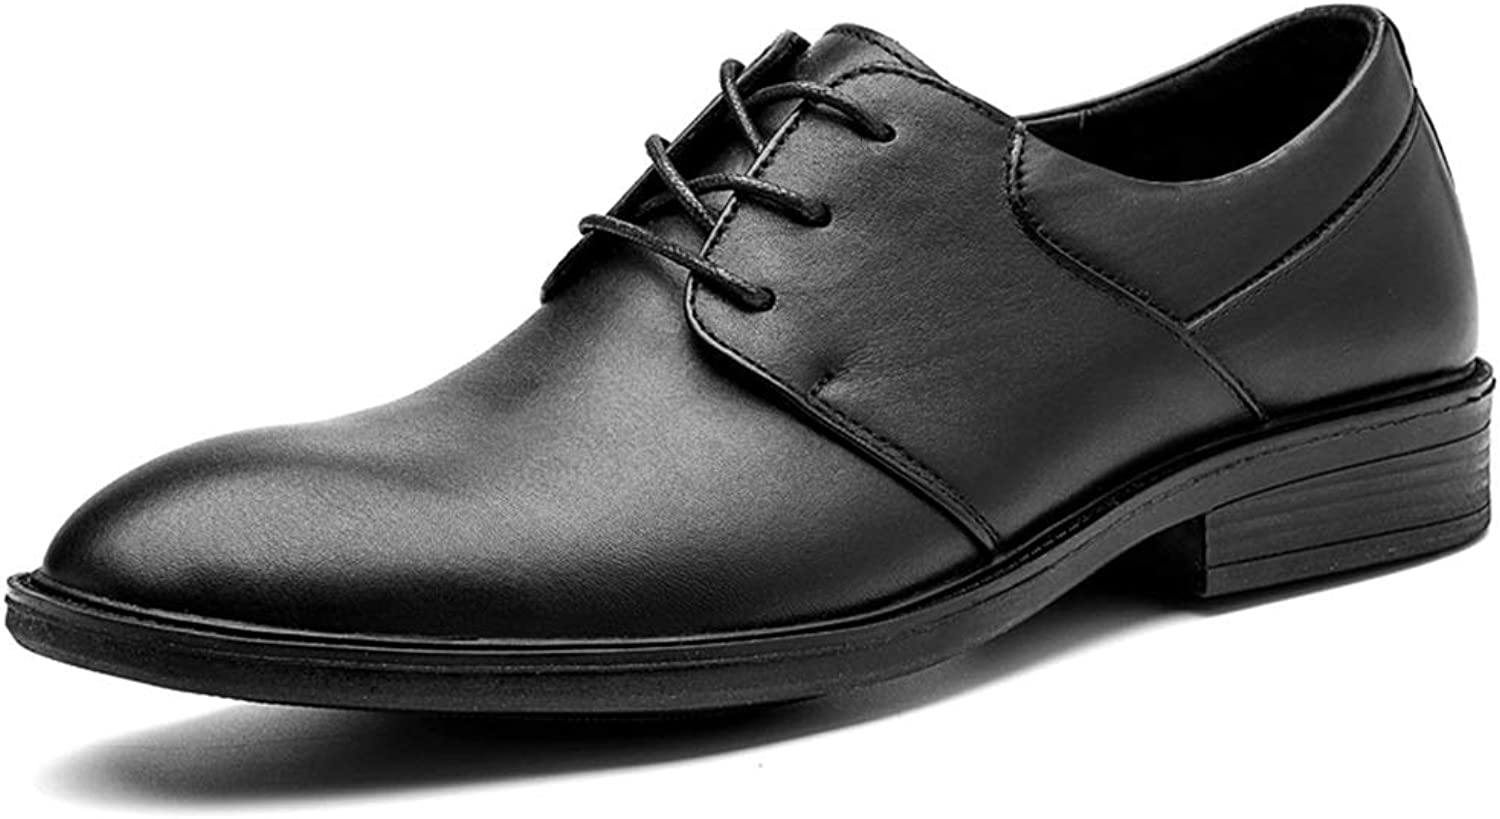 Easy Go Shopping Oxford shoes for Men Formal shoes Lace Up OX Leather Classic Pure color Business shoes Cricket shoes